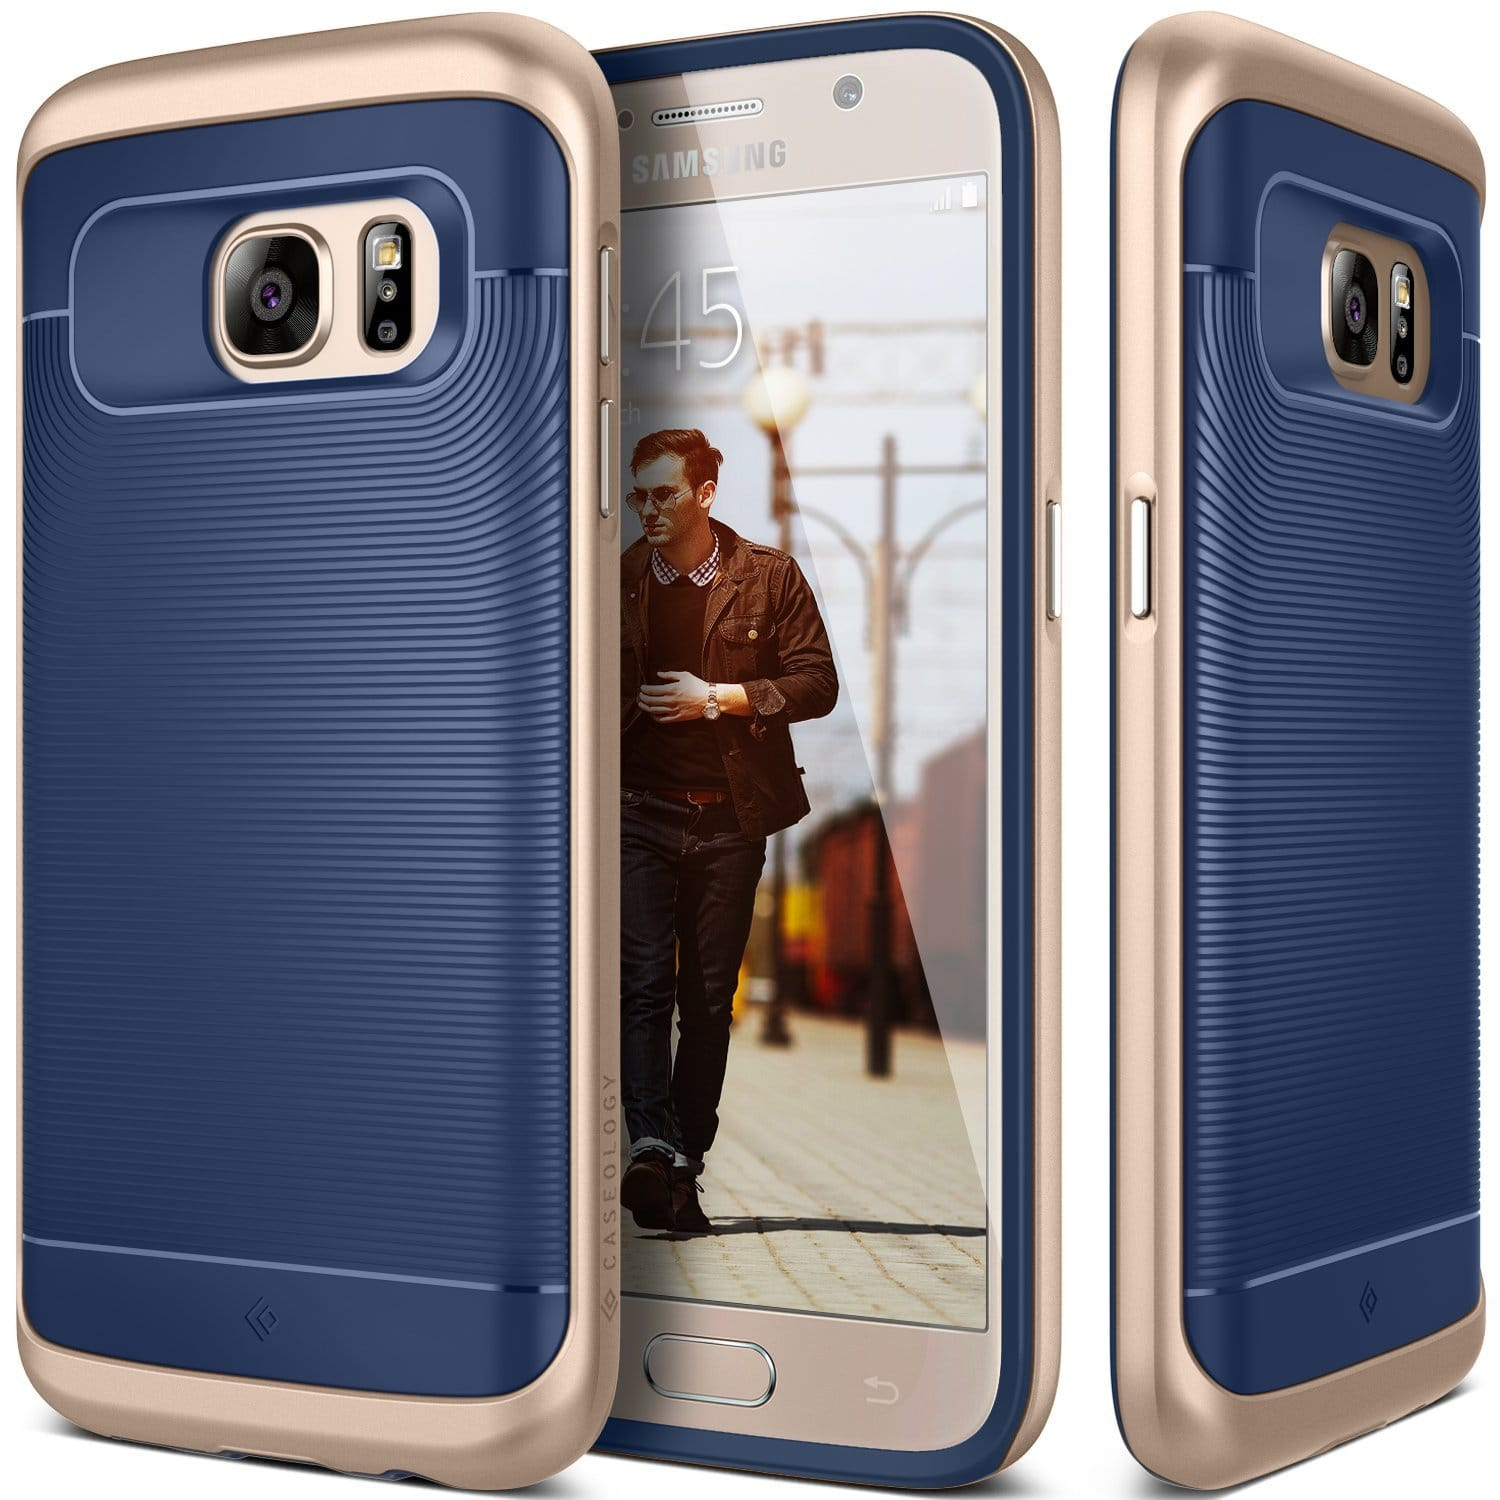 Caseology Cases: Galaxy S7/Edge/S6/Edge+/Note 4, iPhone 6/6S/Plus/SE/5, LG G4/G5  from $4 & More + Free S&H